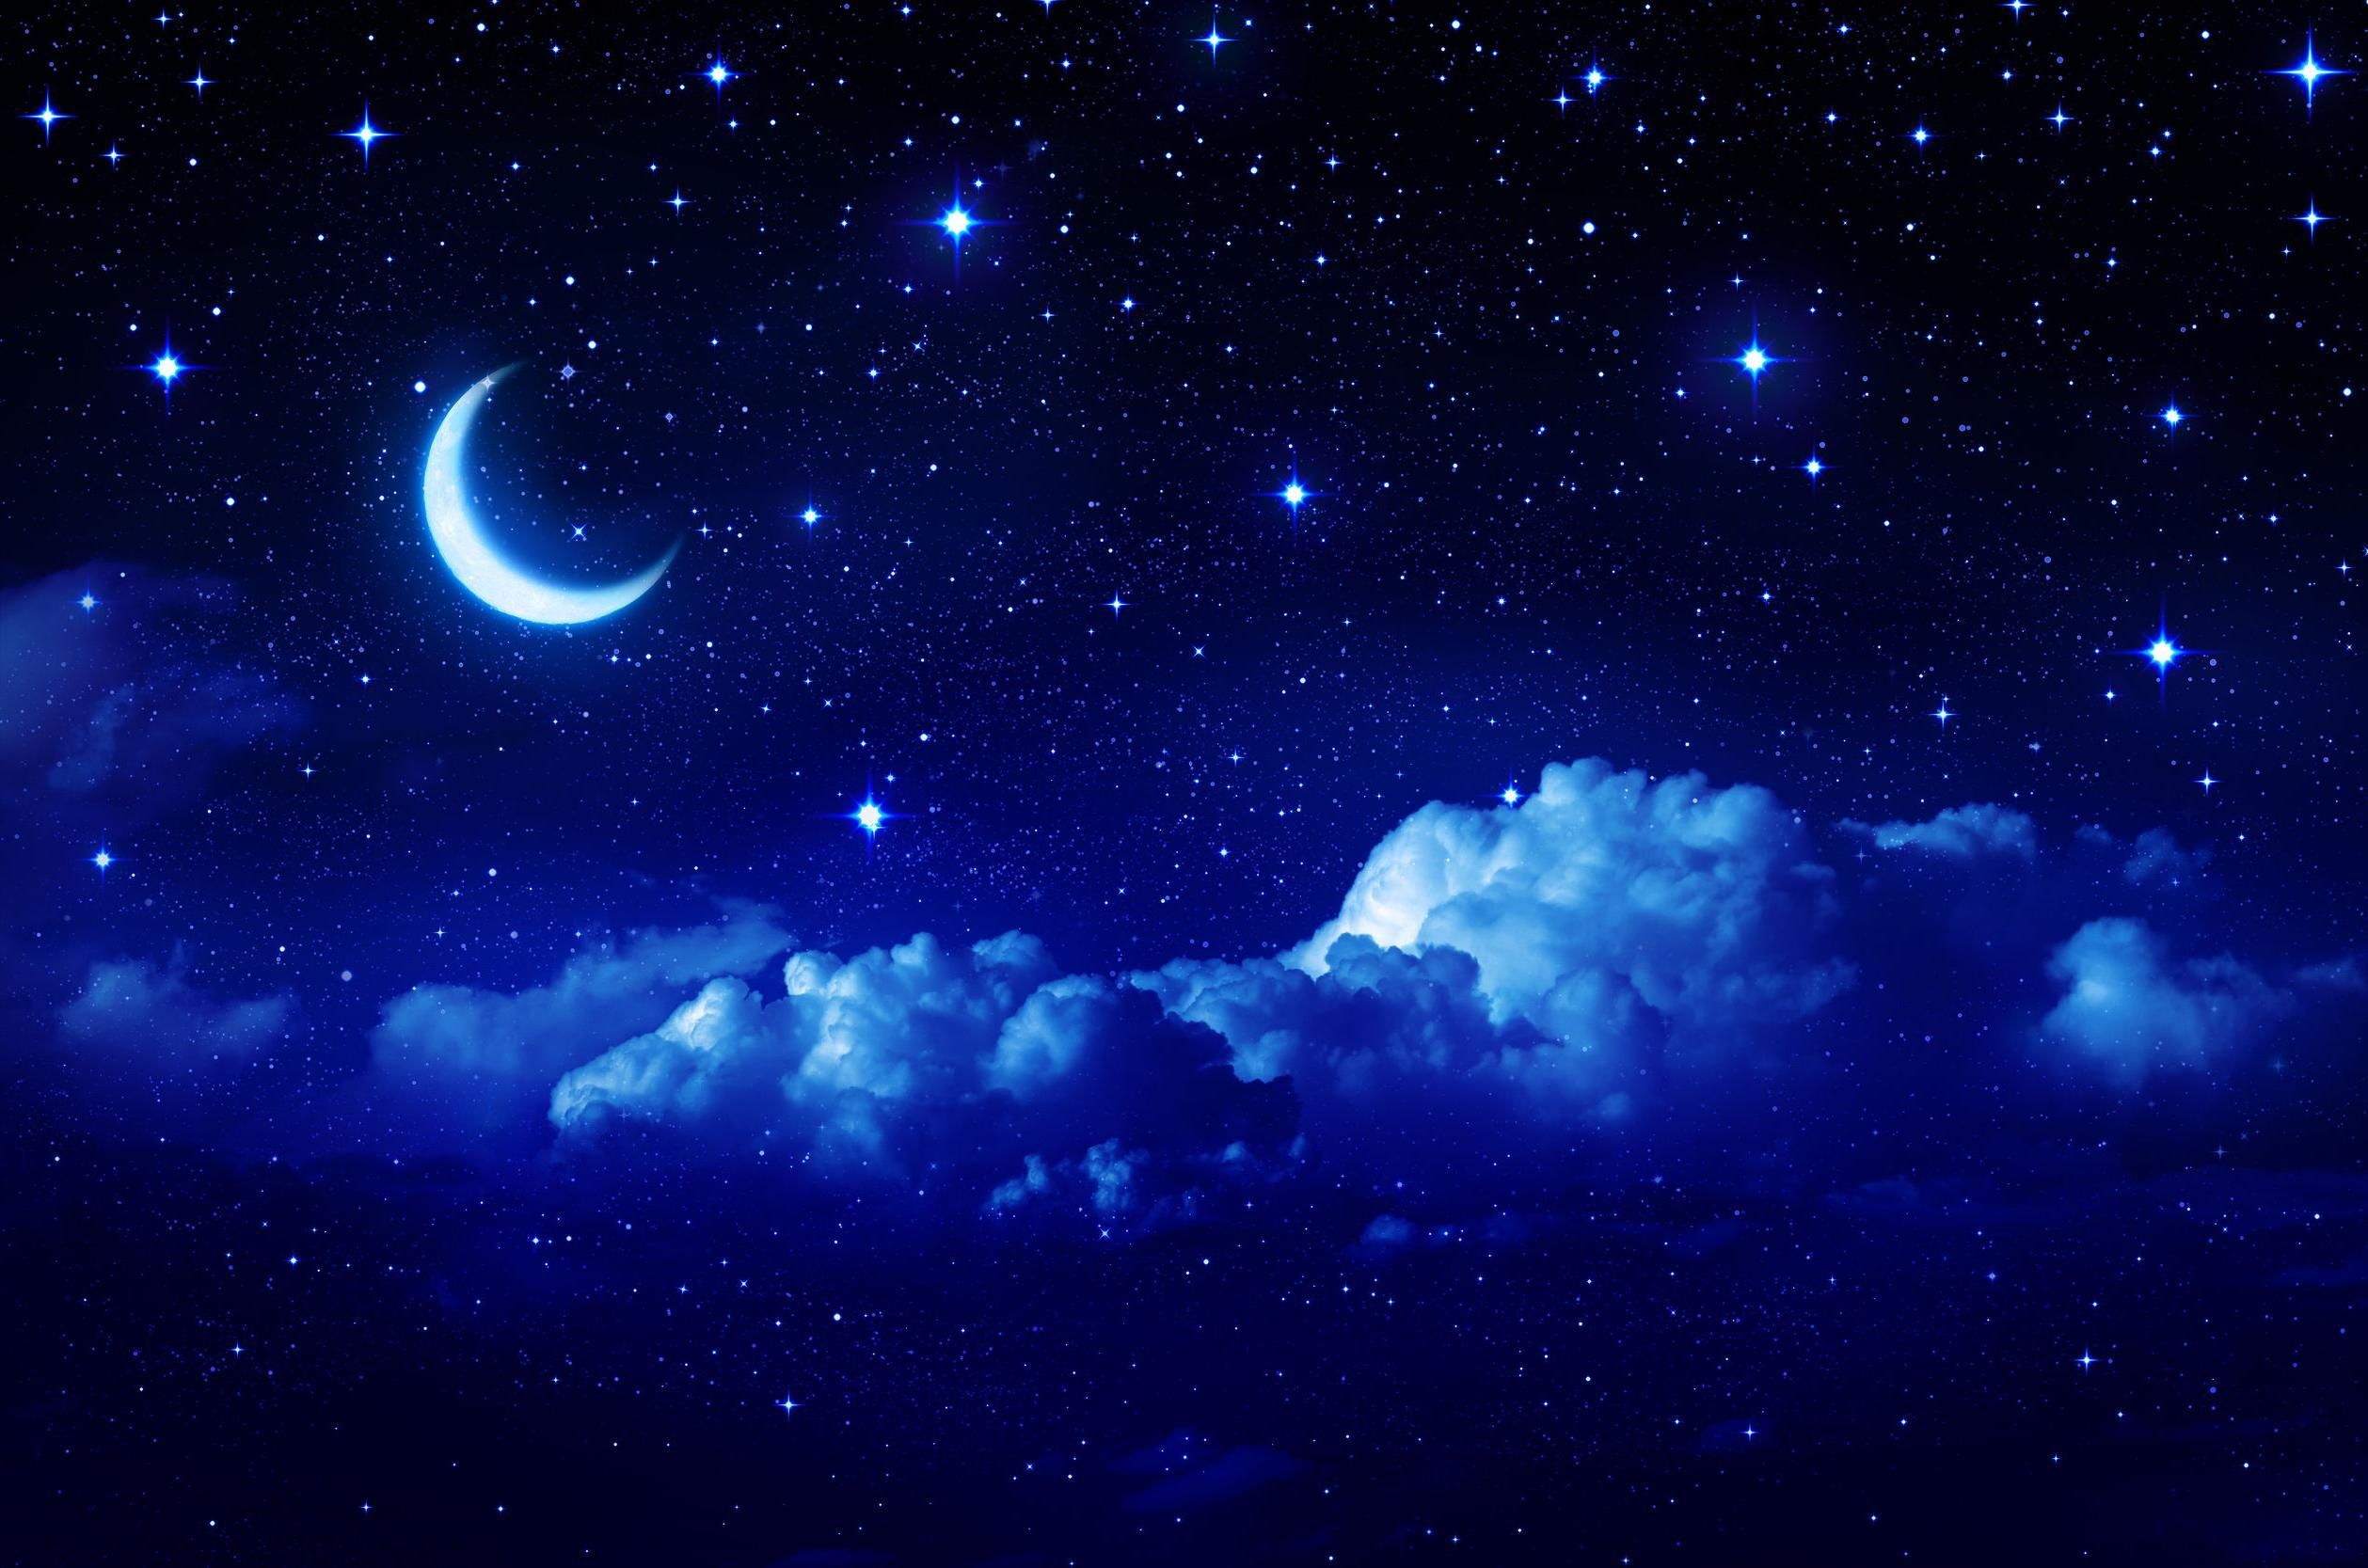 Blue Moon And Star Wallpapers Top Free Blue Moon And Star